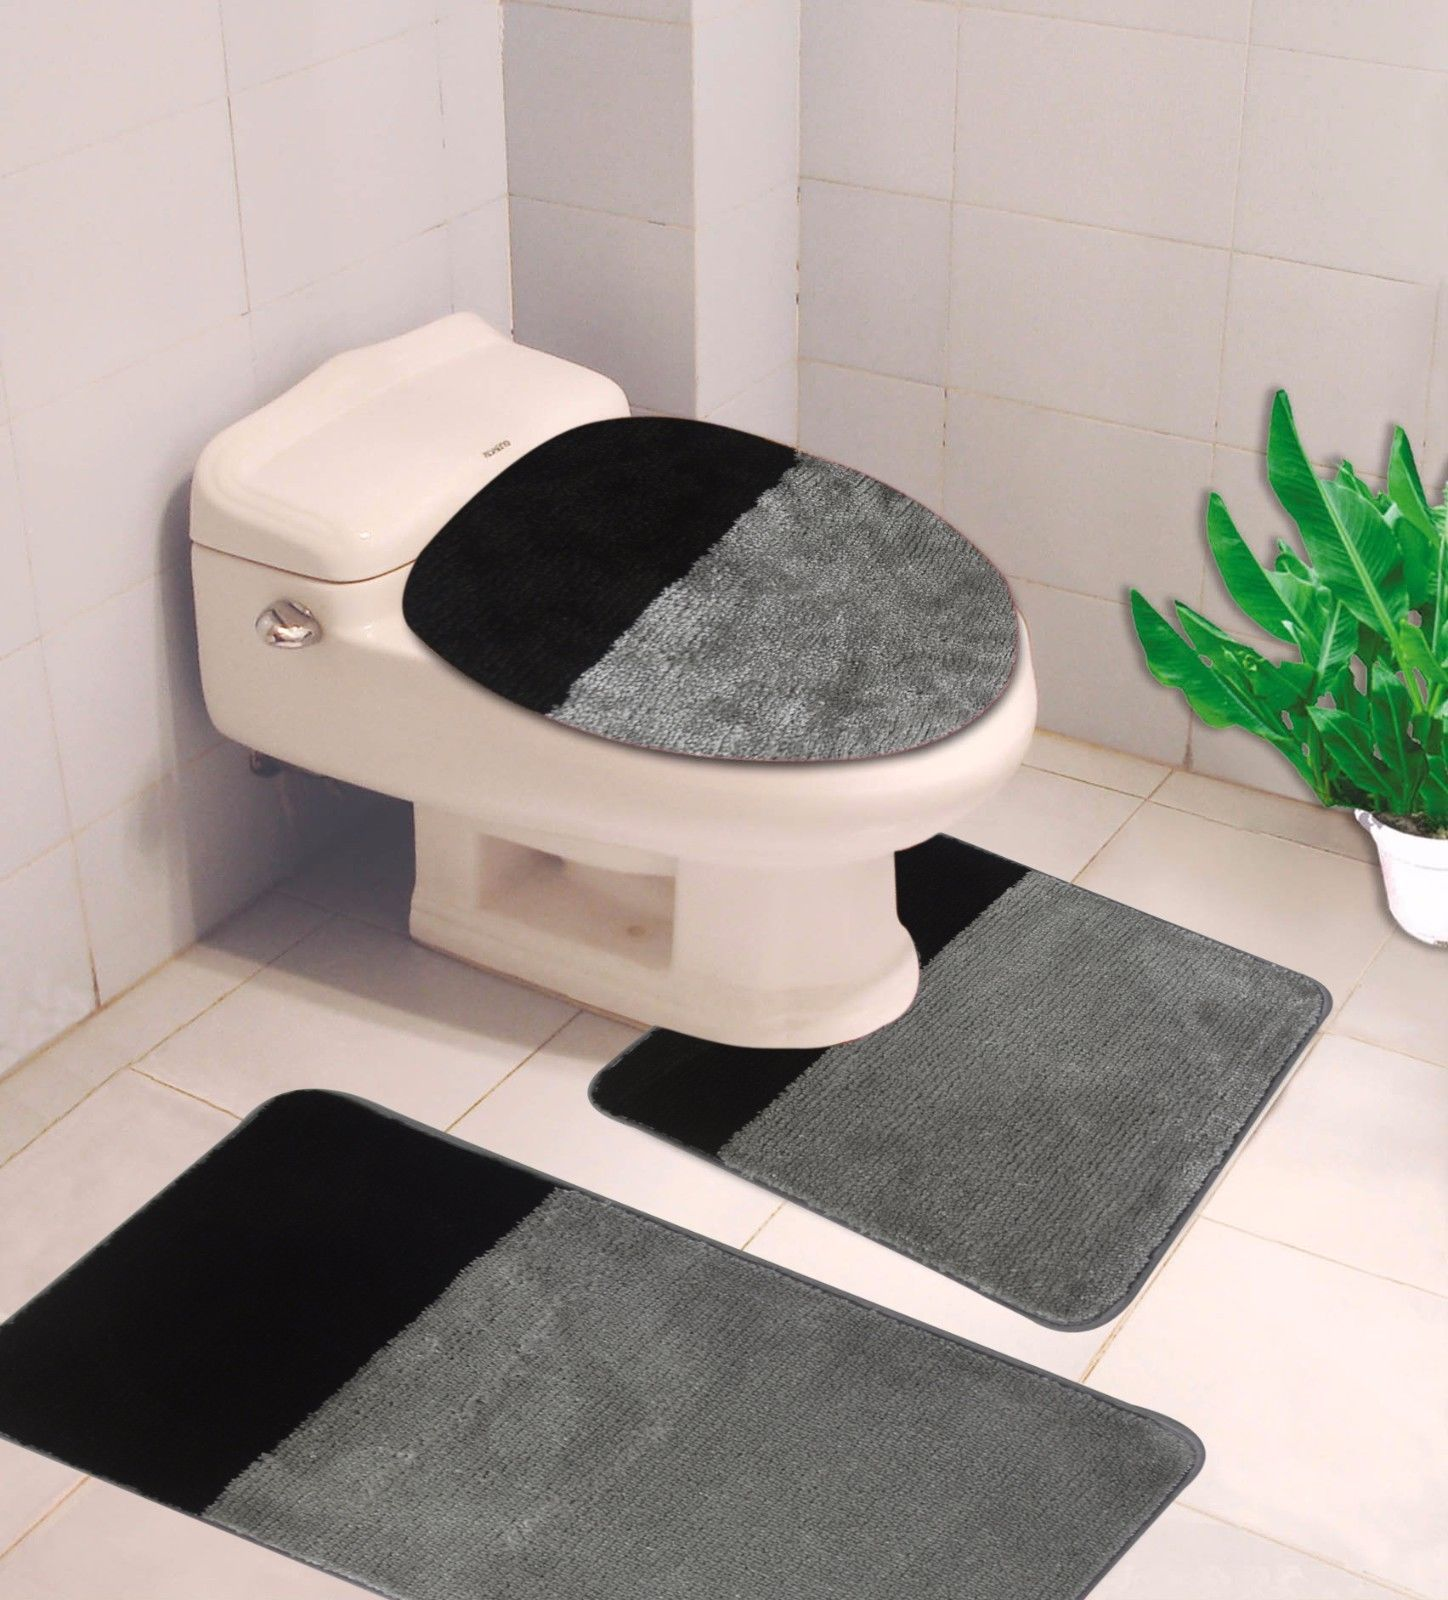 """3-PC (#7) 2 Tone Silver/Black  HIGH QUALITY Jacquard Bathroom Bath Rug Set Washable Anti Slip Rug 18""""x28"""", Contour Mat 18""""x18"""" and Toilet Seat Lid Cover 18""""x19"""" with Non-Skid Rubber Back"""